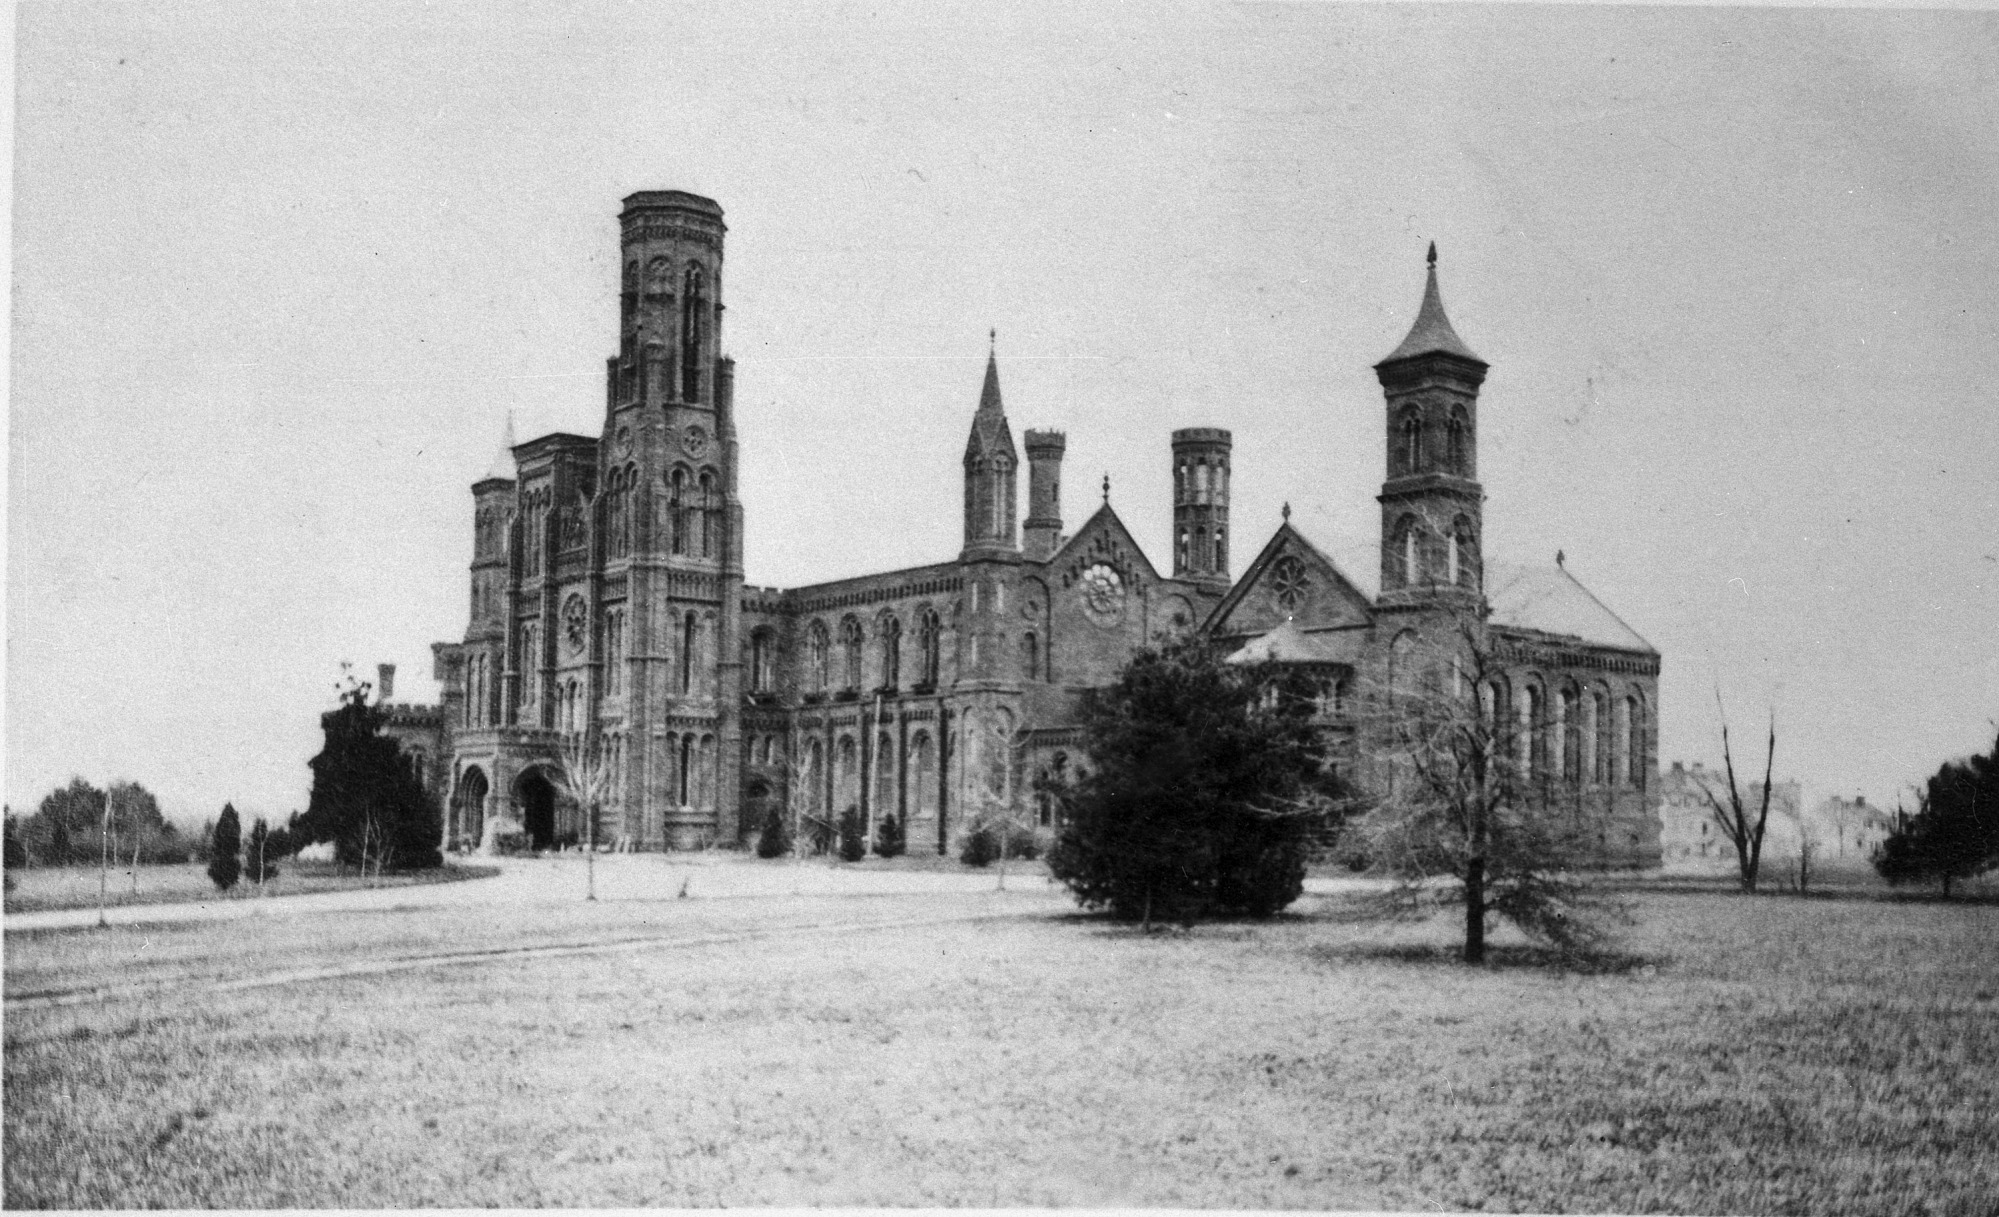 Reconstruction of SI Building Begins, July 1, 1865, Smithsonian Archives - History Div.